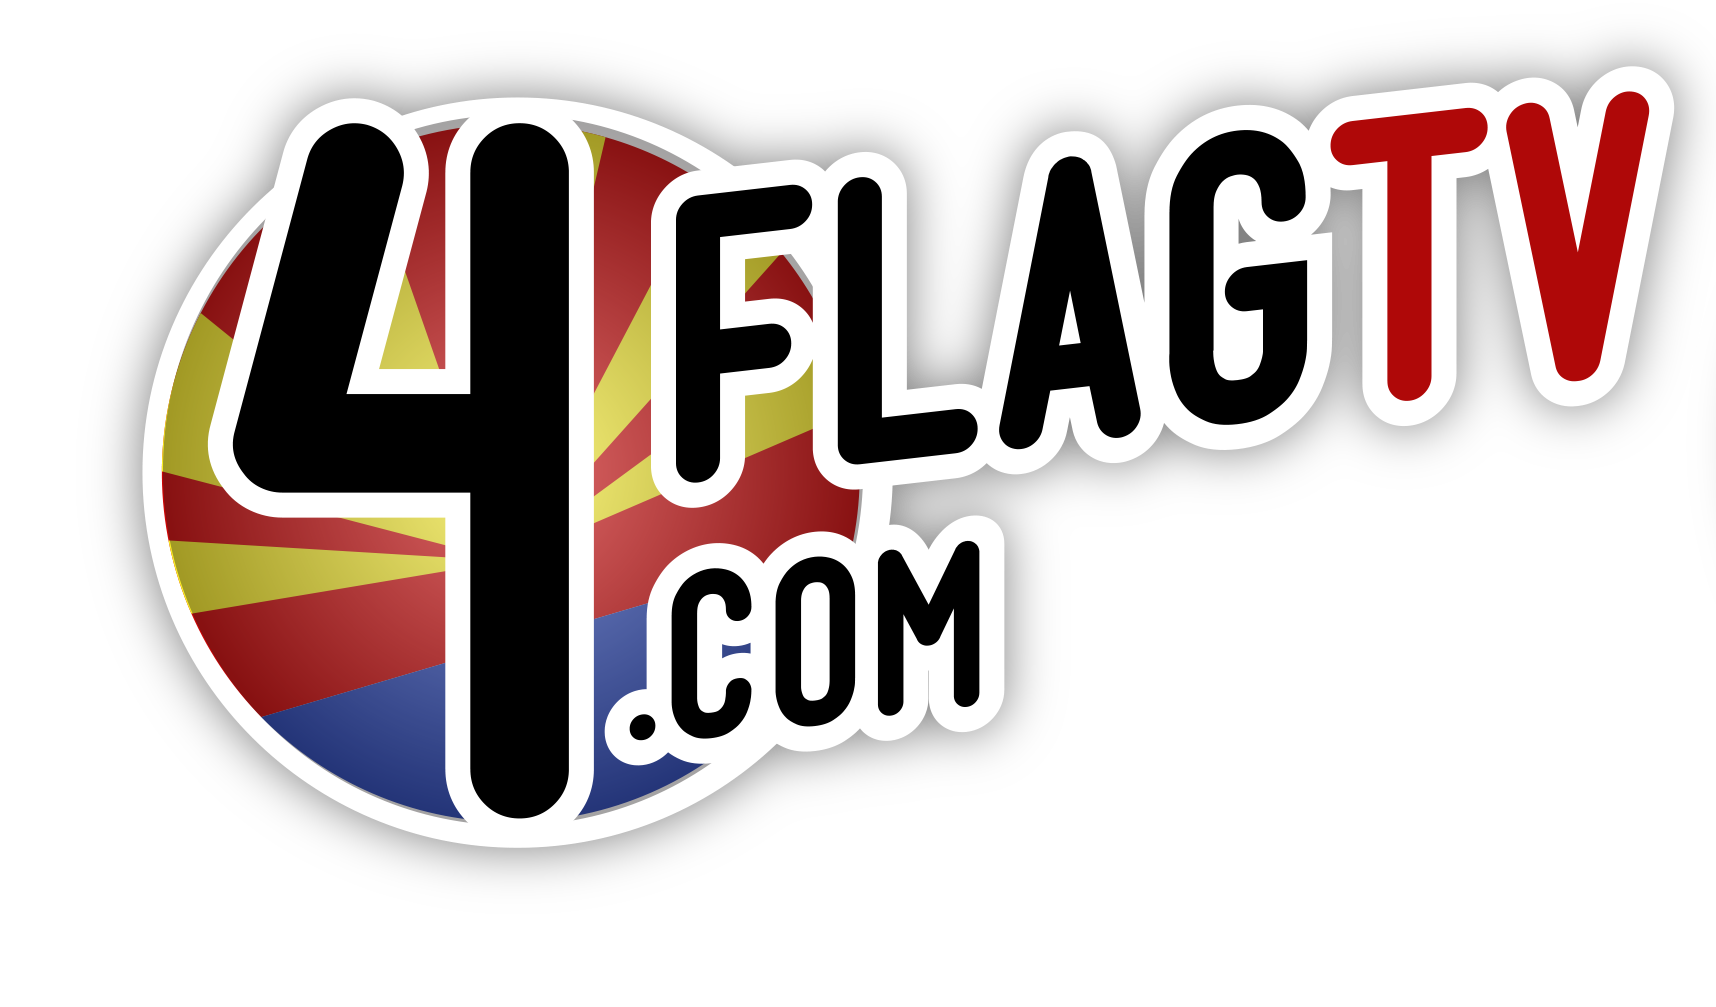 4 FlagTV - Flagstaff News Network